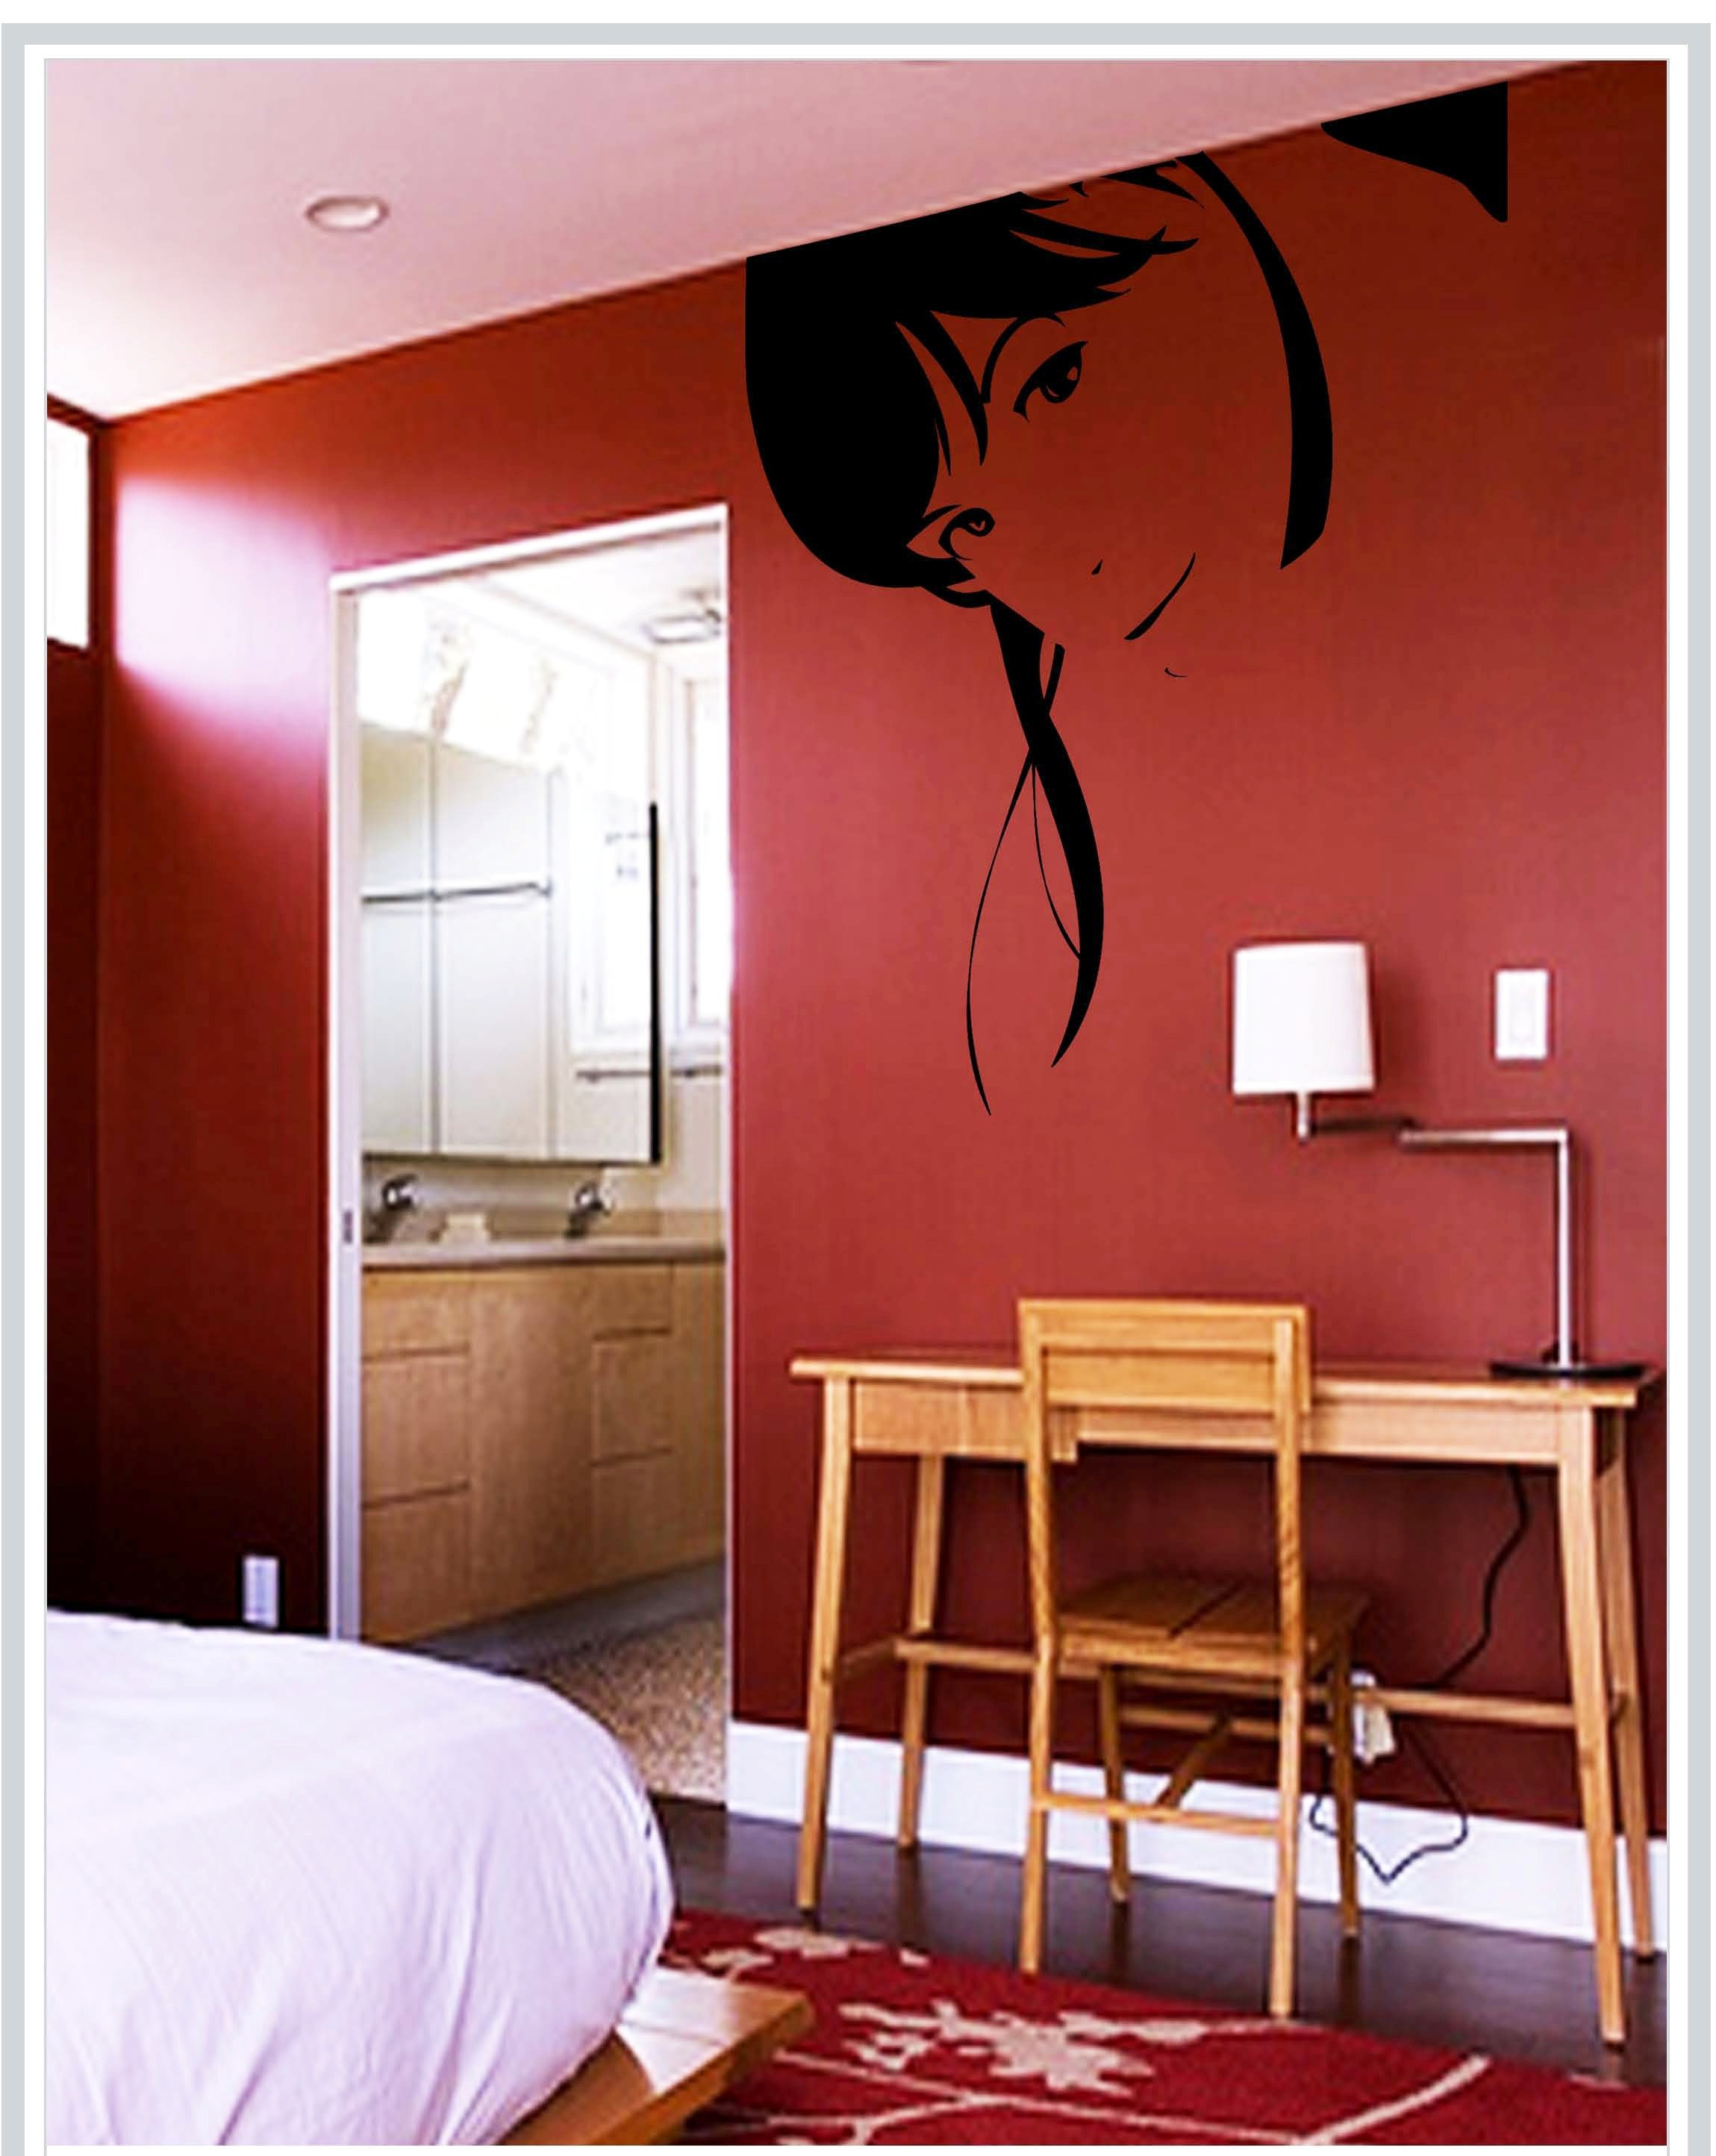 Gloob Decal Style Girl Face Wall Sticker Art Wall N